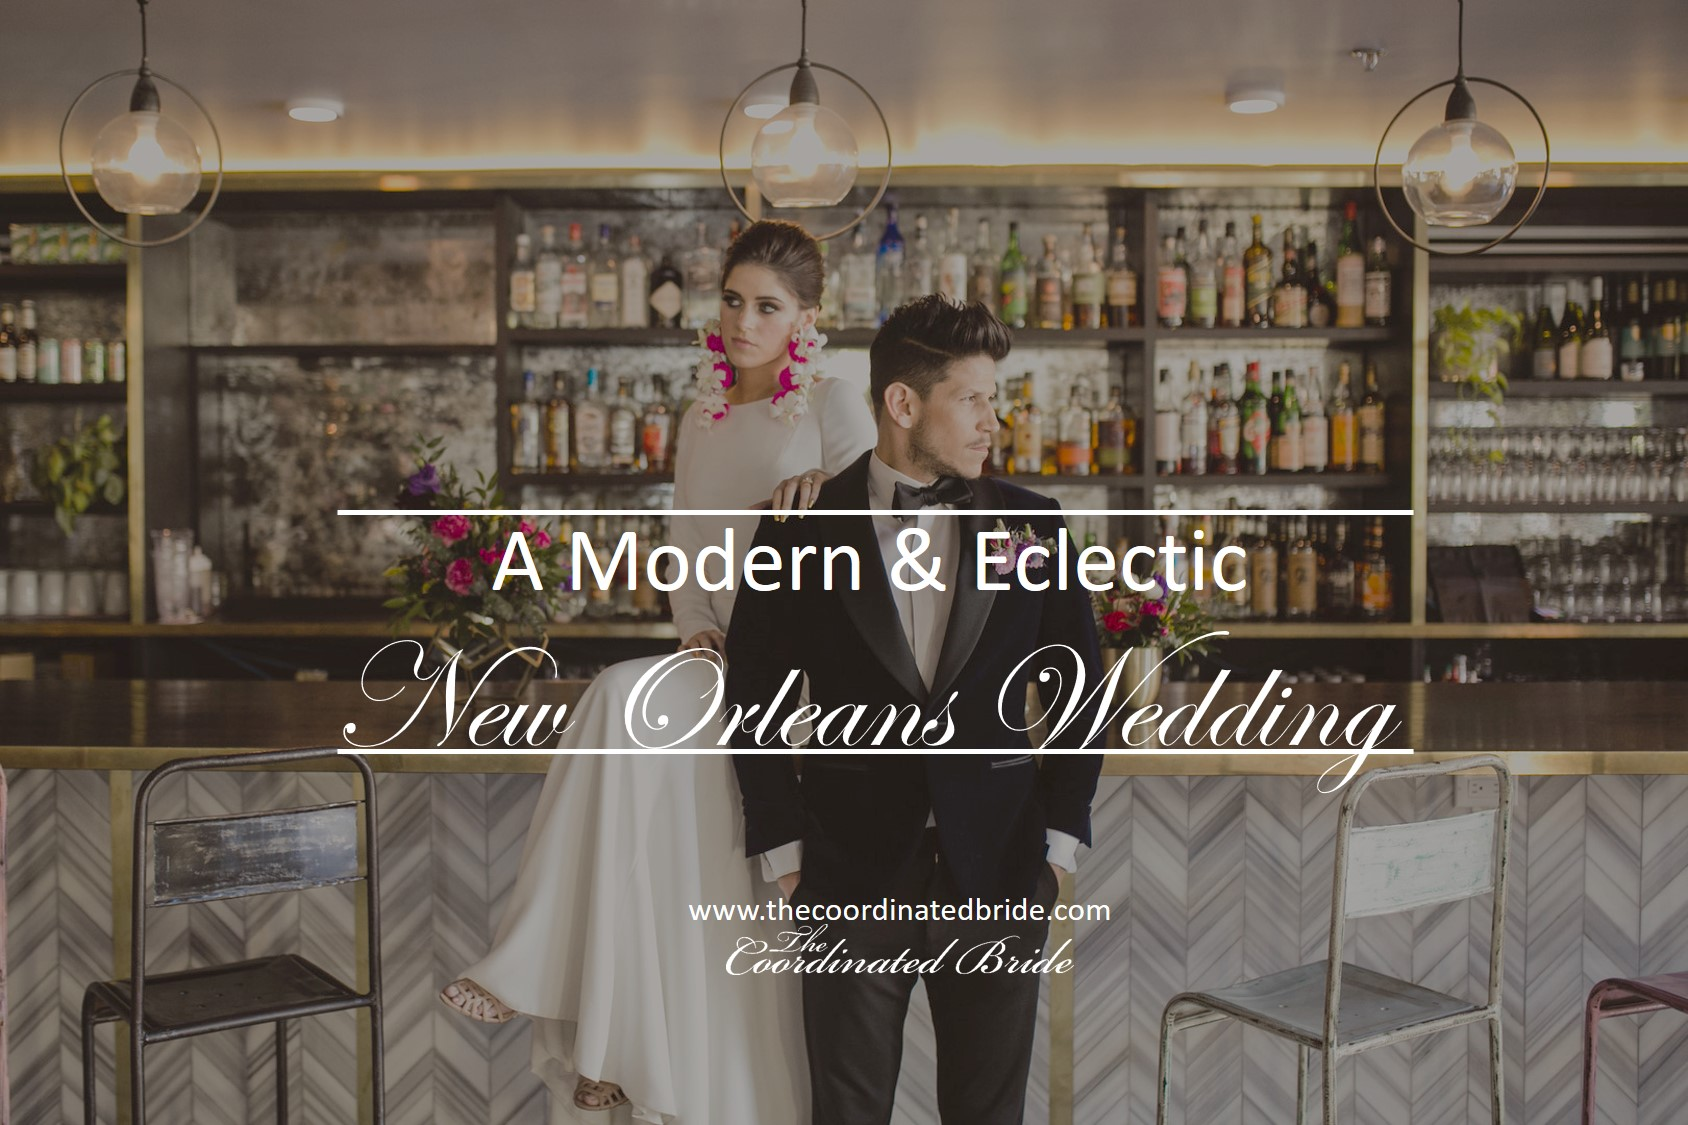 A Modern Eclectic Wedding in New Orleans